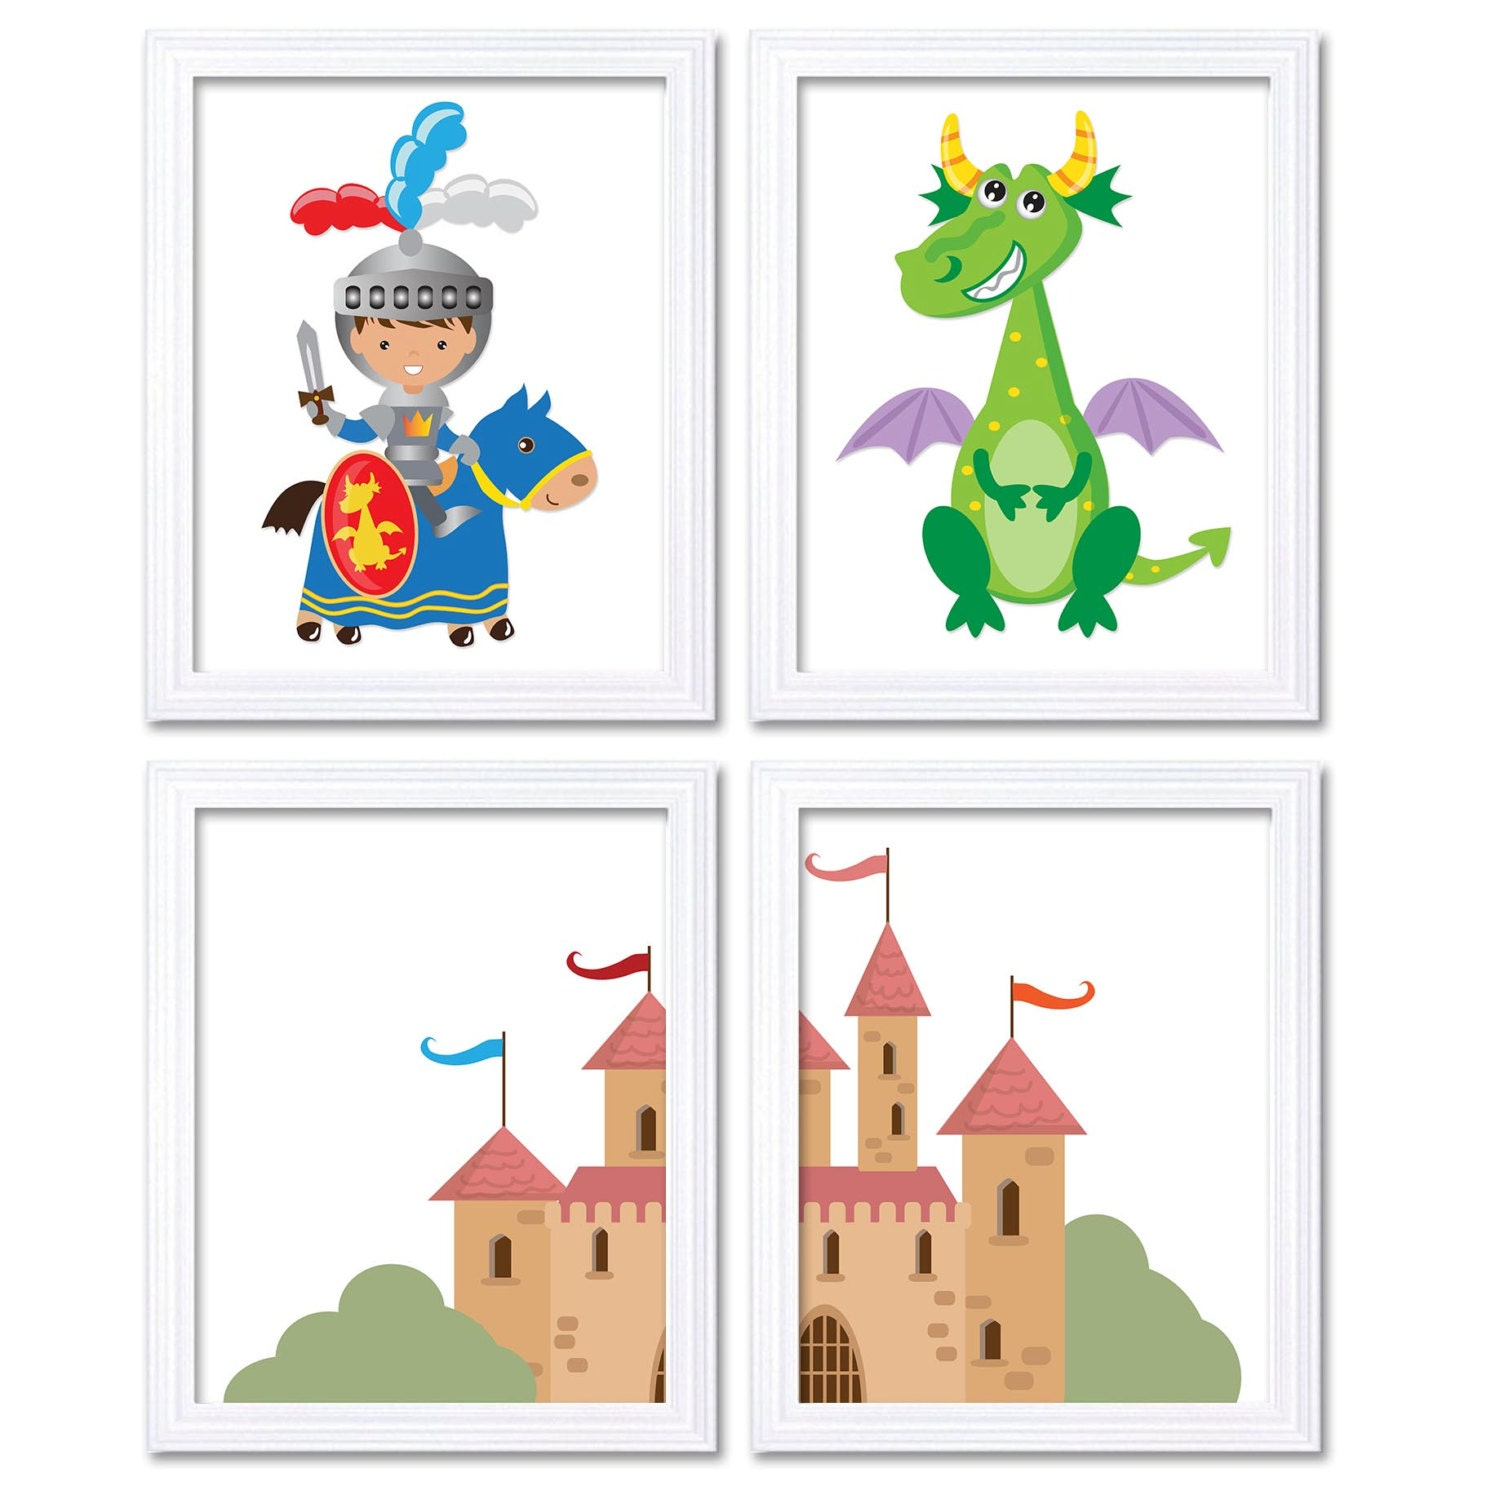 Fairy Tale Nursery Art Child Baby Set of 4 Art Prints Boy Knight Dragon Castle Kids Room Wall Decor